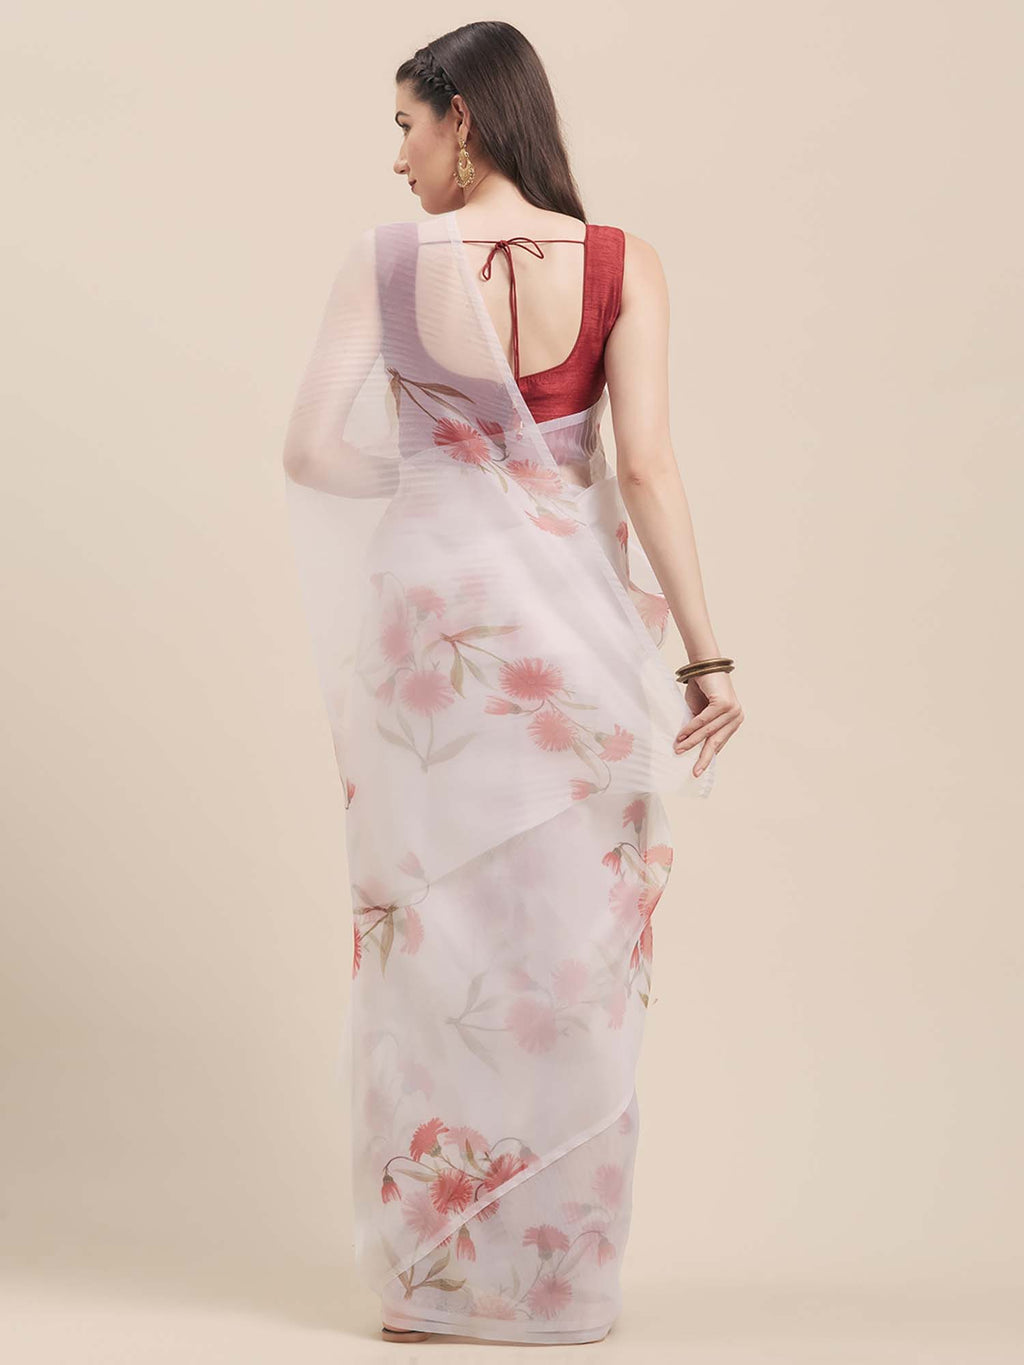 Off White & Red Floral Digital Print Design Oraganza Saree With Poly Dupion Blouse - Riviera Closet